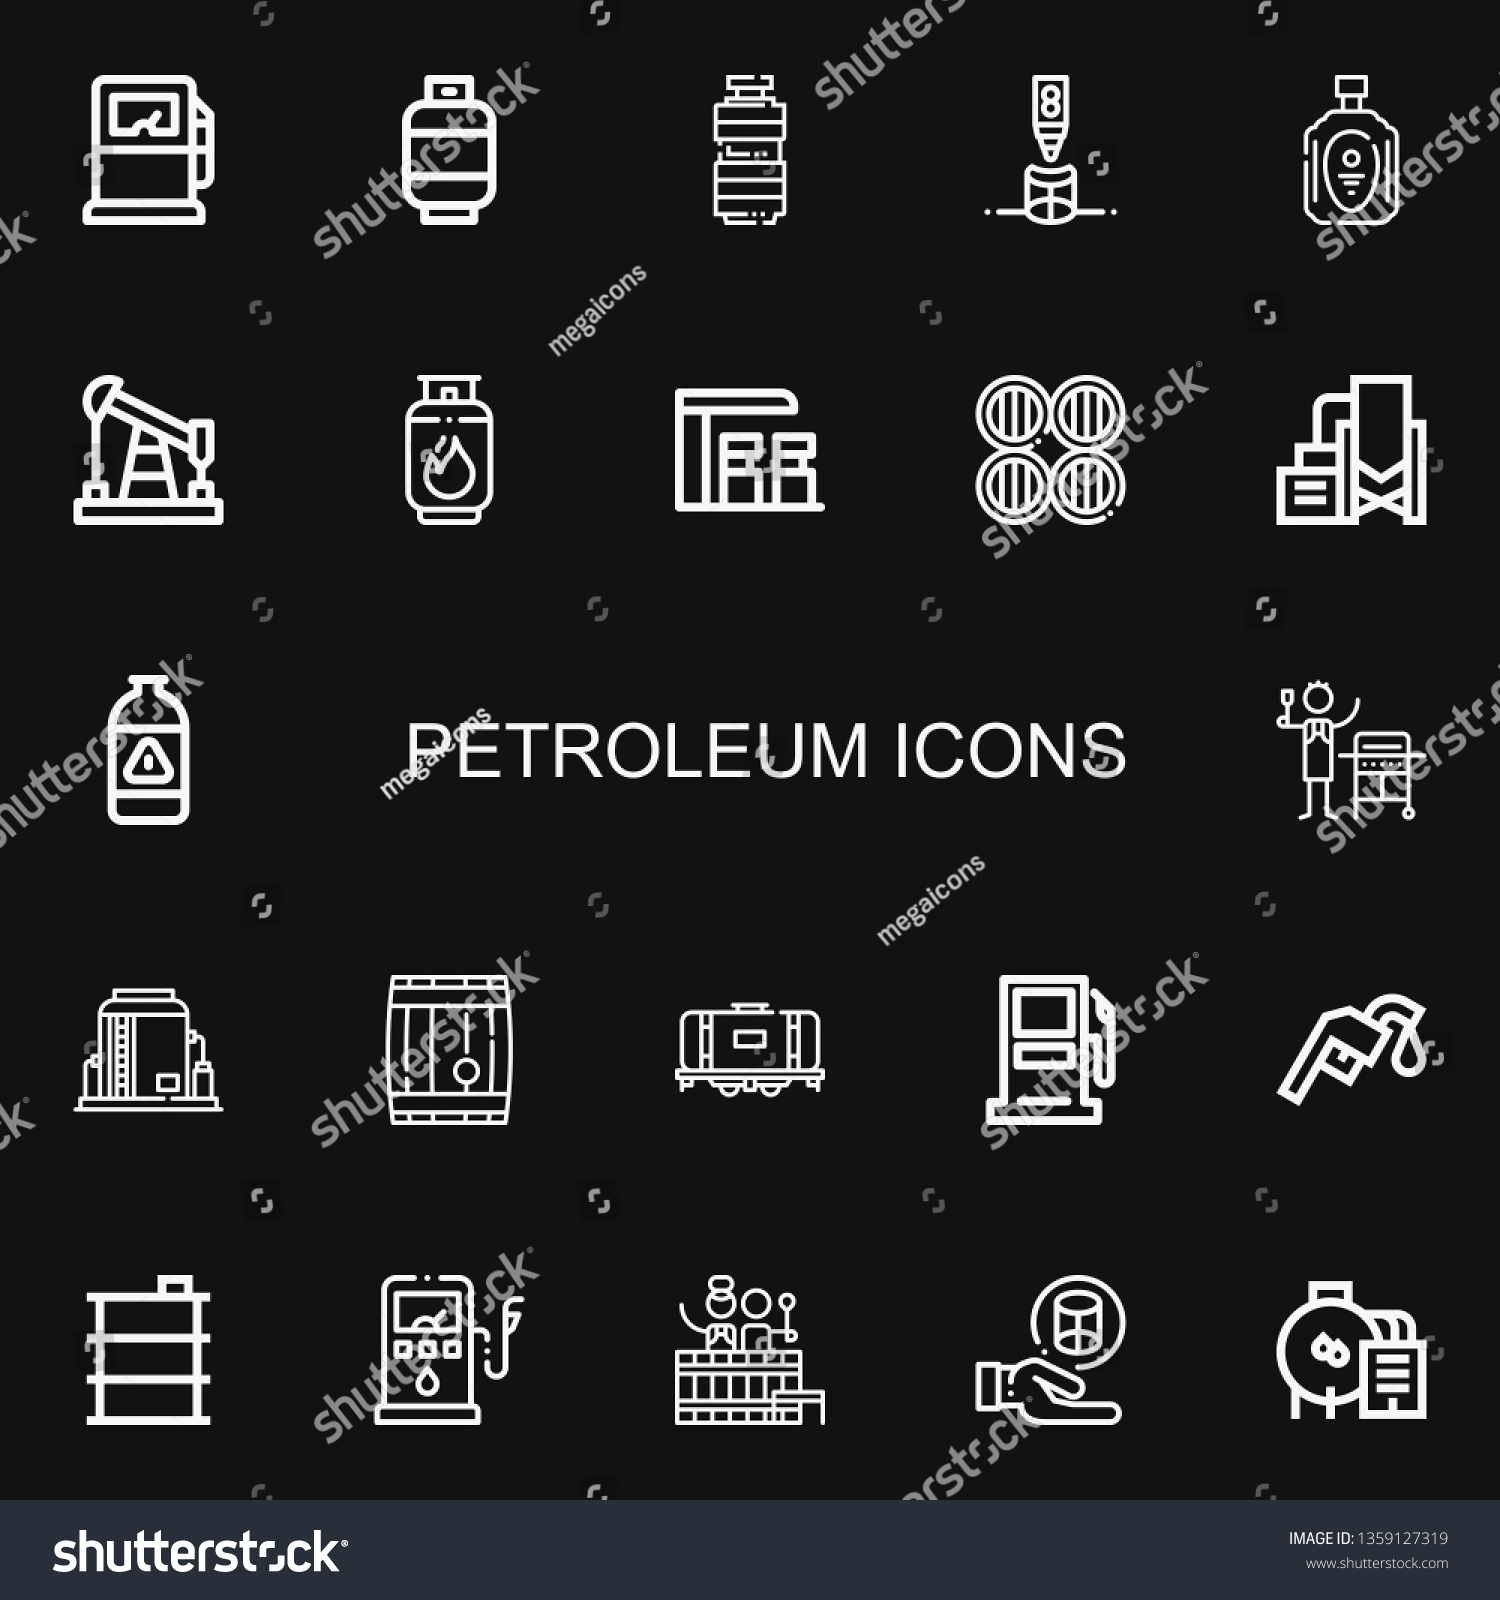 Jalousie Petrol Editable 22 Petroleum Icons Web Mobile Stock Vector Royalty